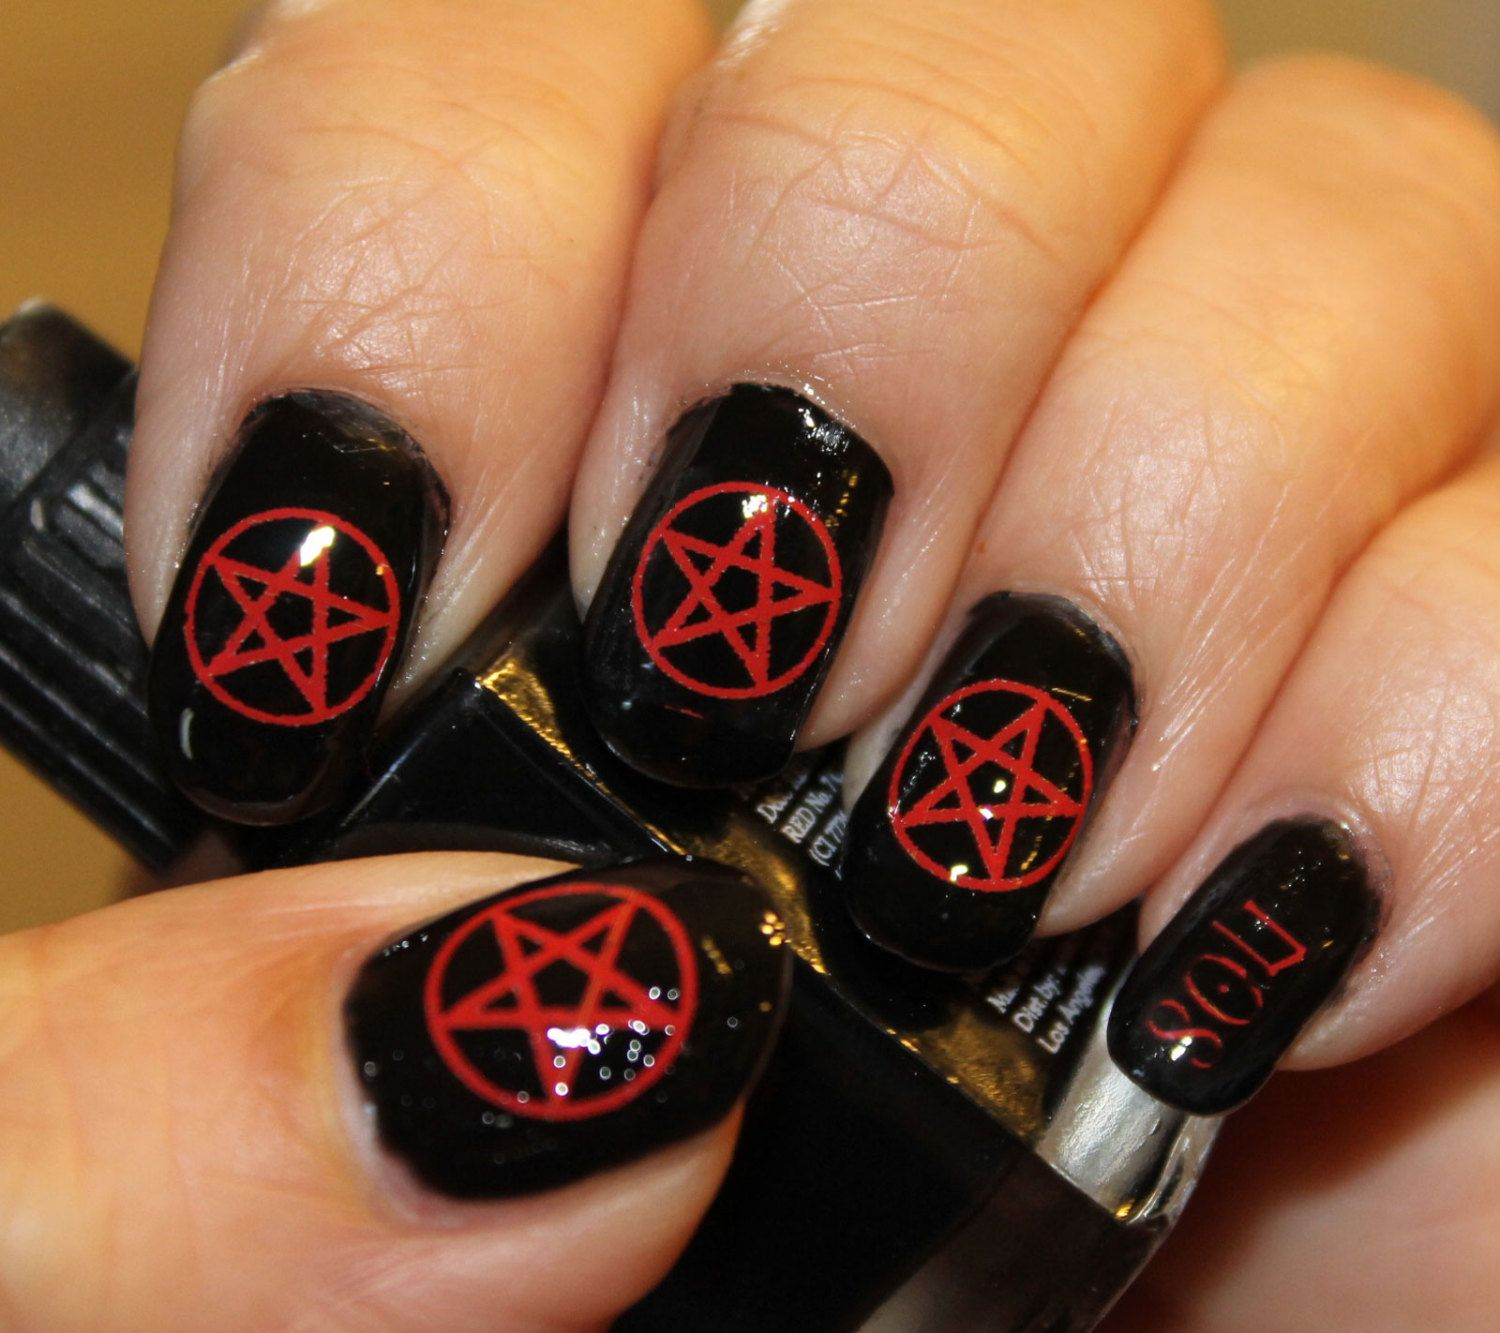 66 RED PENTACLE SYMBOLS Nail Art Opaque by NorthofSalem on Etsy - Red PENTACLE Nail Art MEGAPACK (PNR) 66 Opaque Waterslide Decals